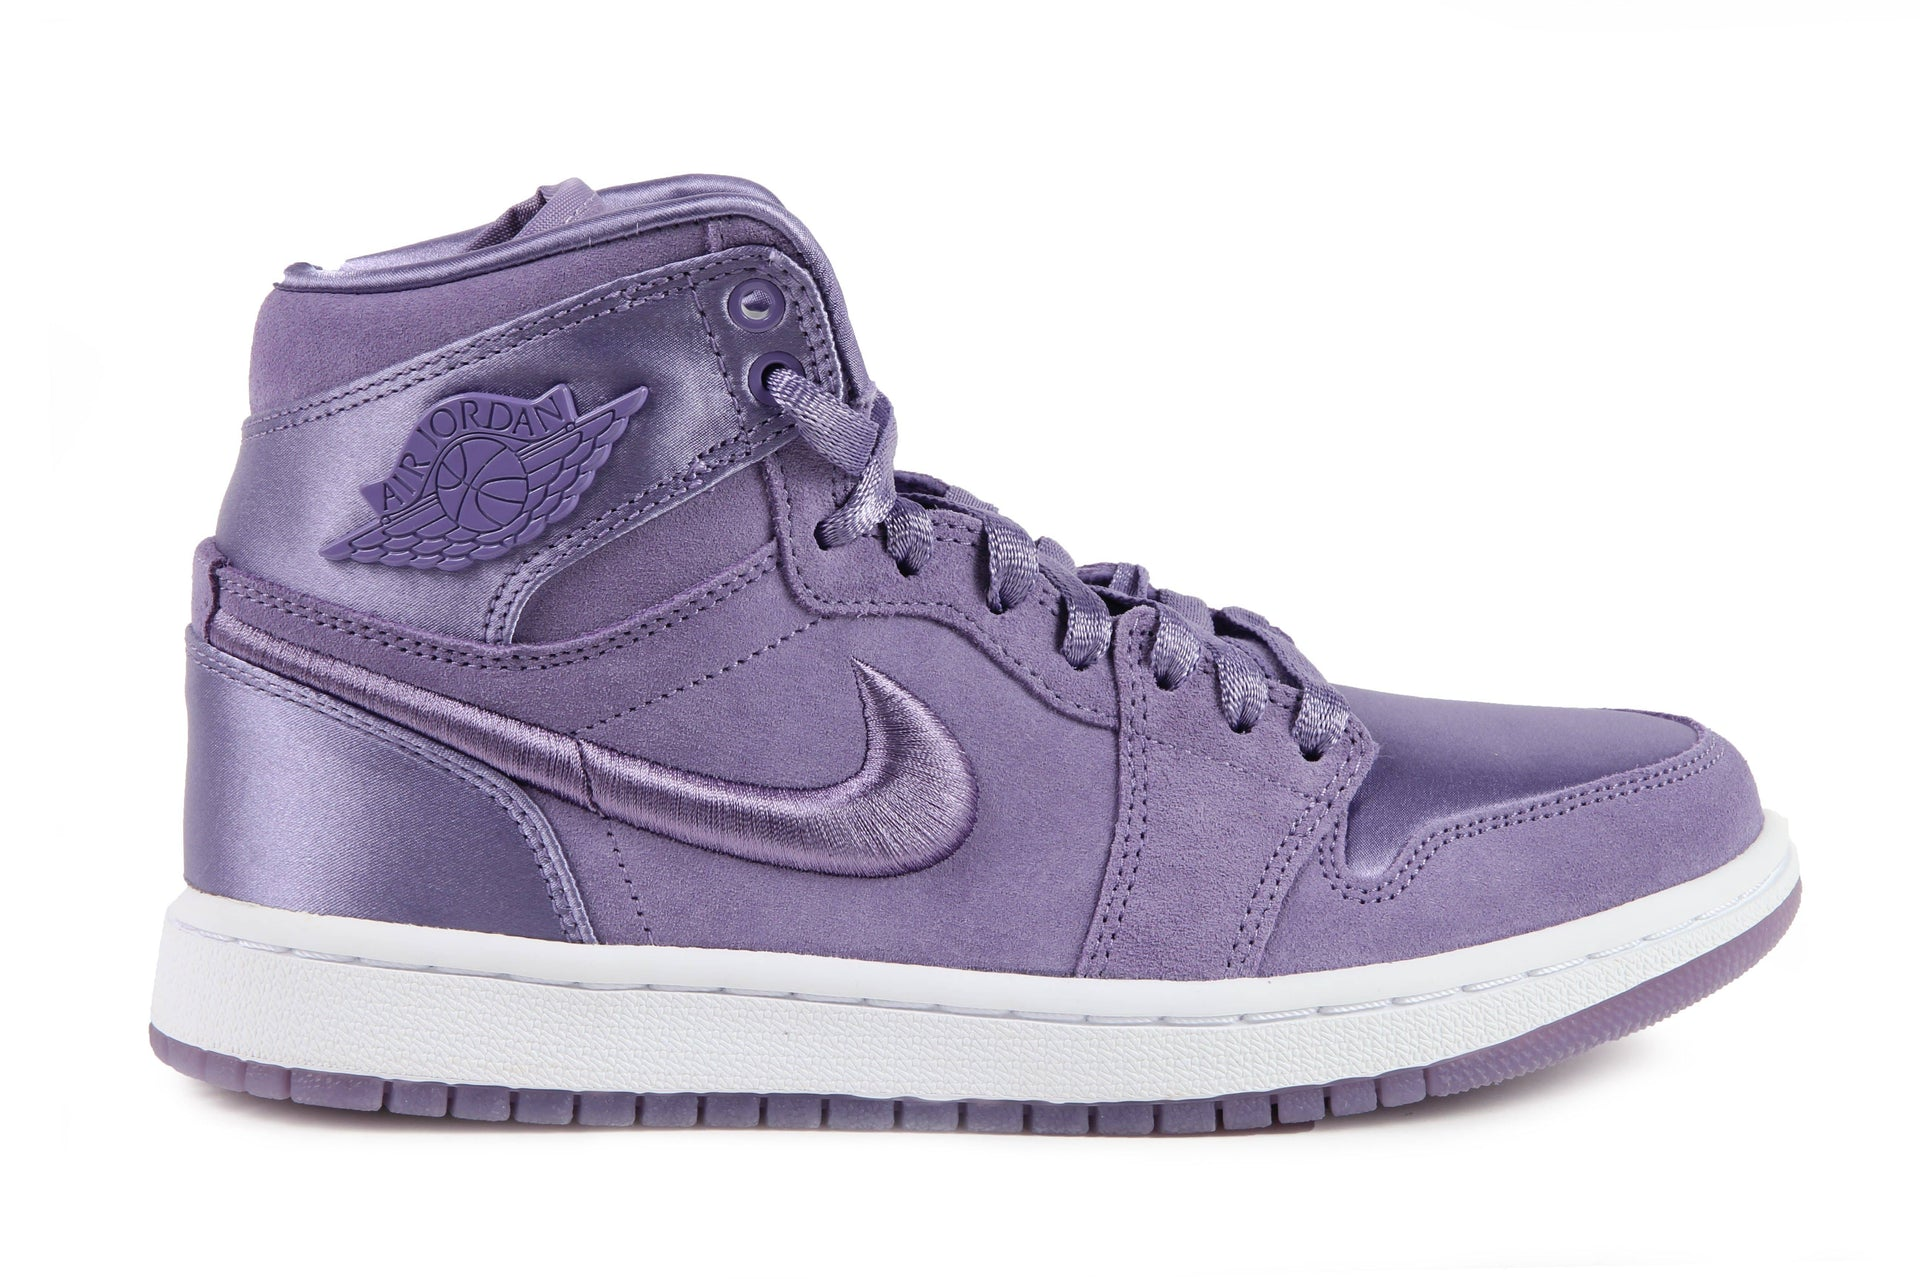 a4fdef5883c261 WOMEN S AIR JORDAN 1 RETRO HIGH